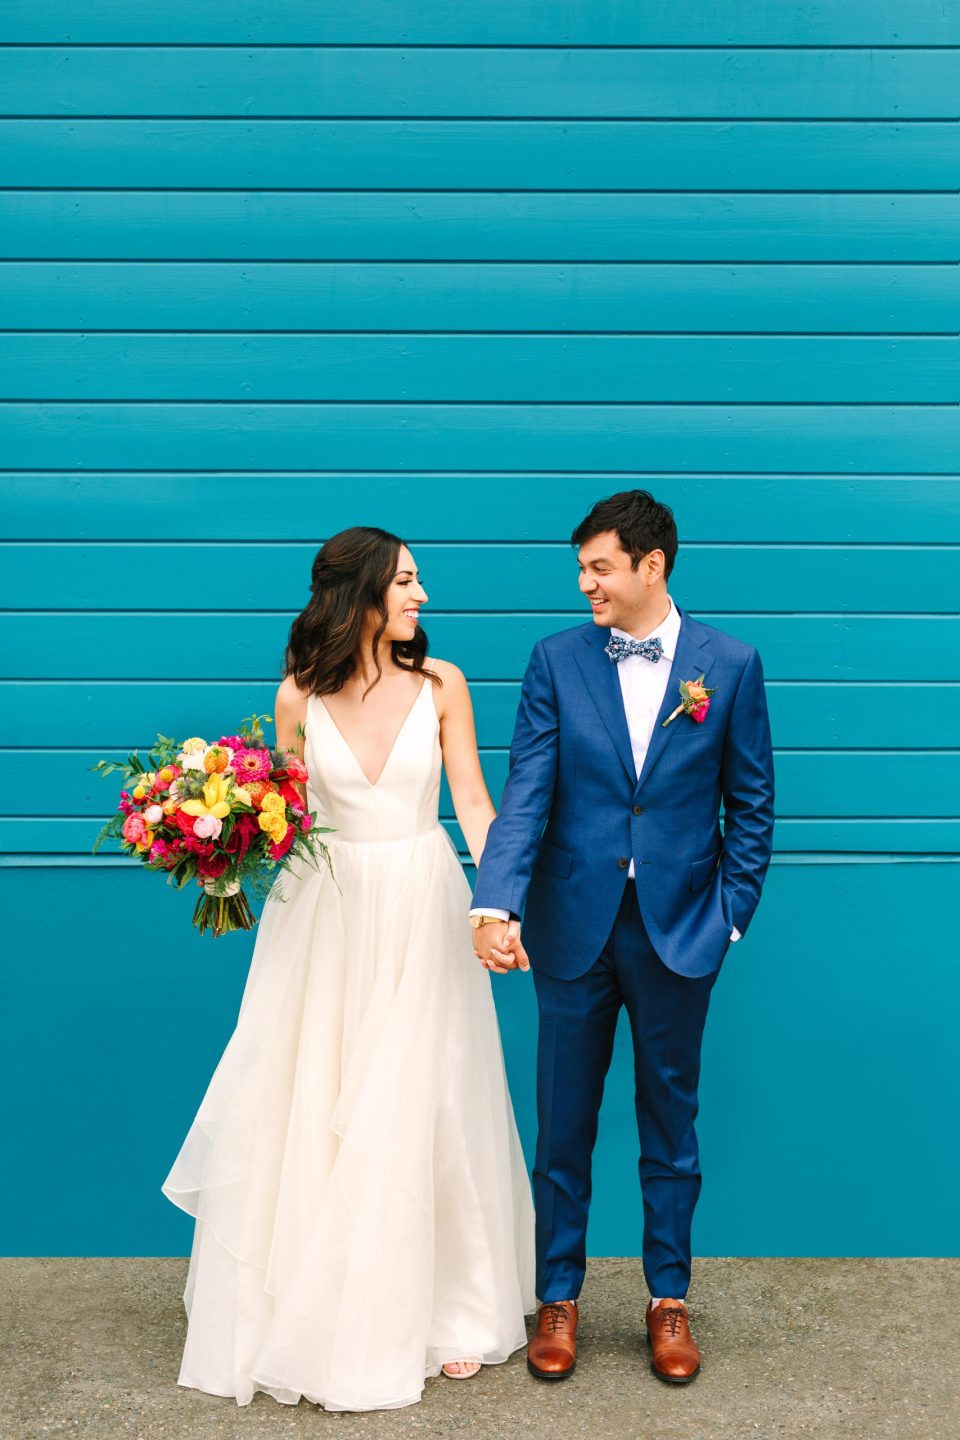 Sodo Park colorful wedding couple by Mary Costa Photography